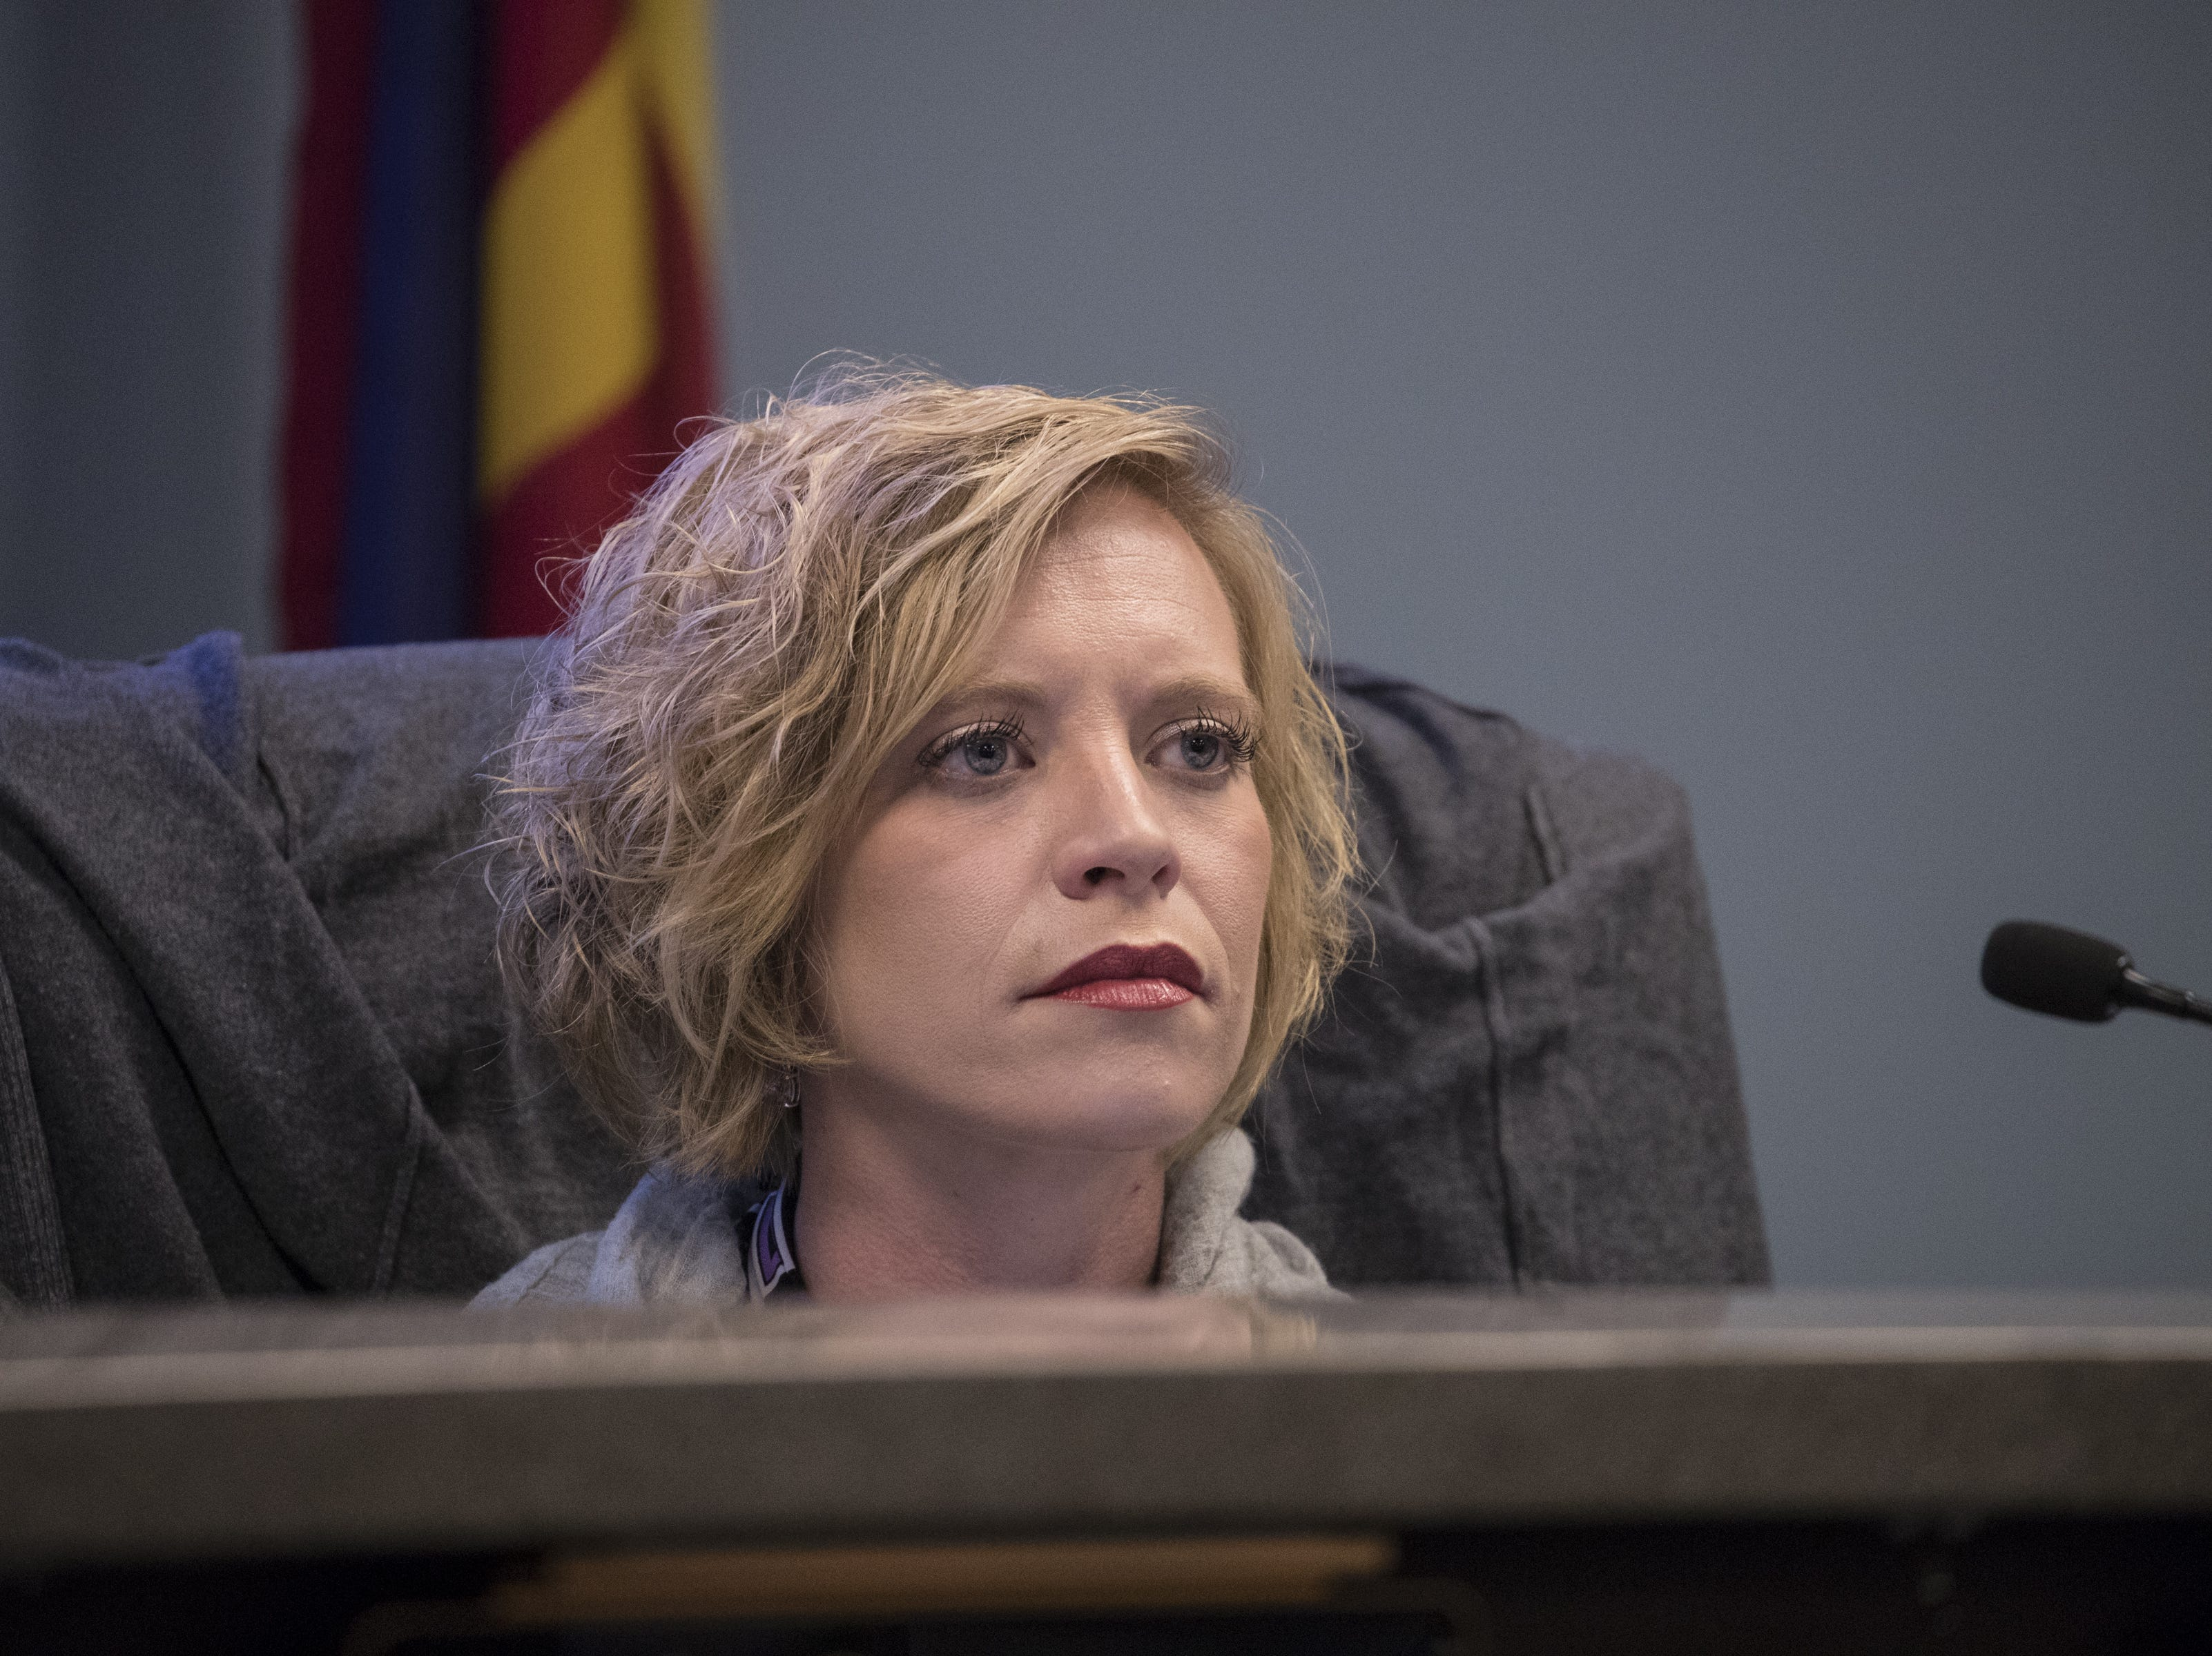 Rachel Yanof, vice President and public member, listens during an Arizona State Board for Charter Schools meeting on Sept. 10, 2018, at the Arizona Department of Education in Phoenix.